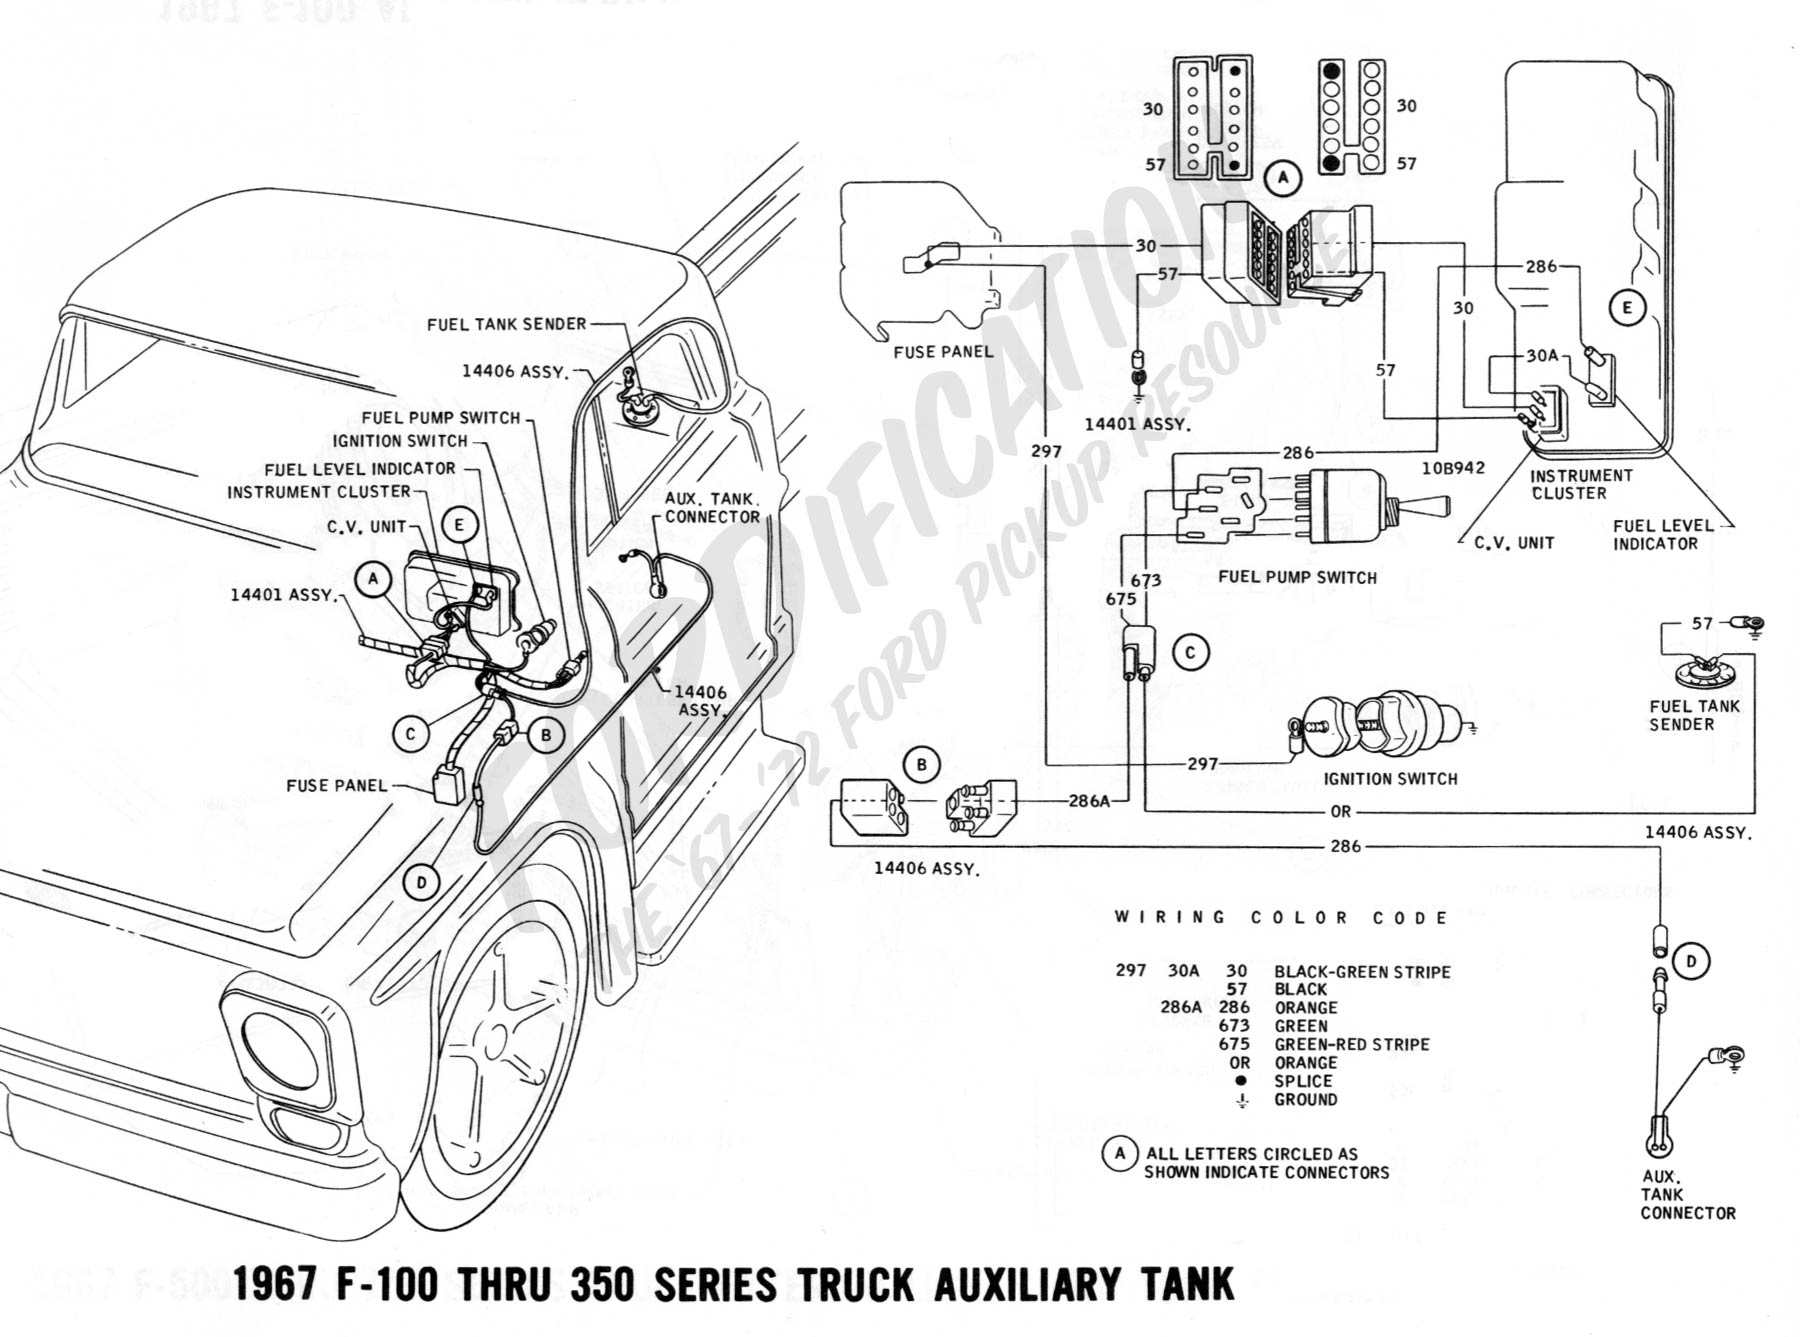 hight resolution of 1990 f150 fuel system diagram wiring diagram list 1990 ford f150 fuel system diagram